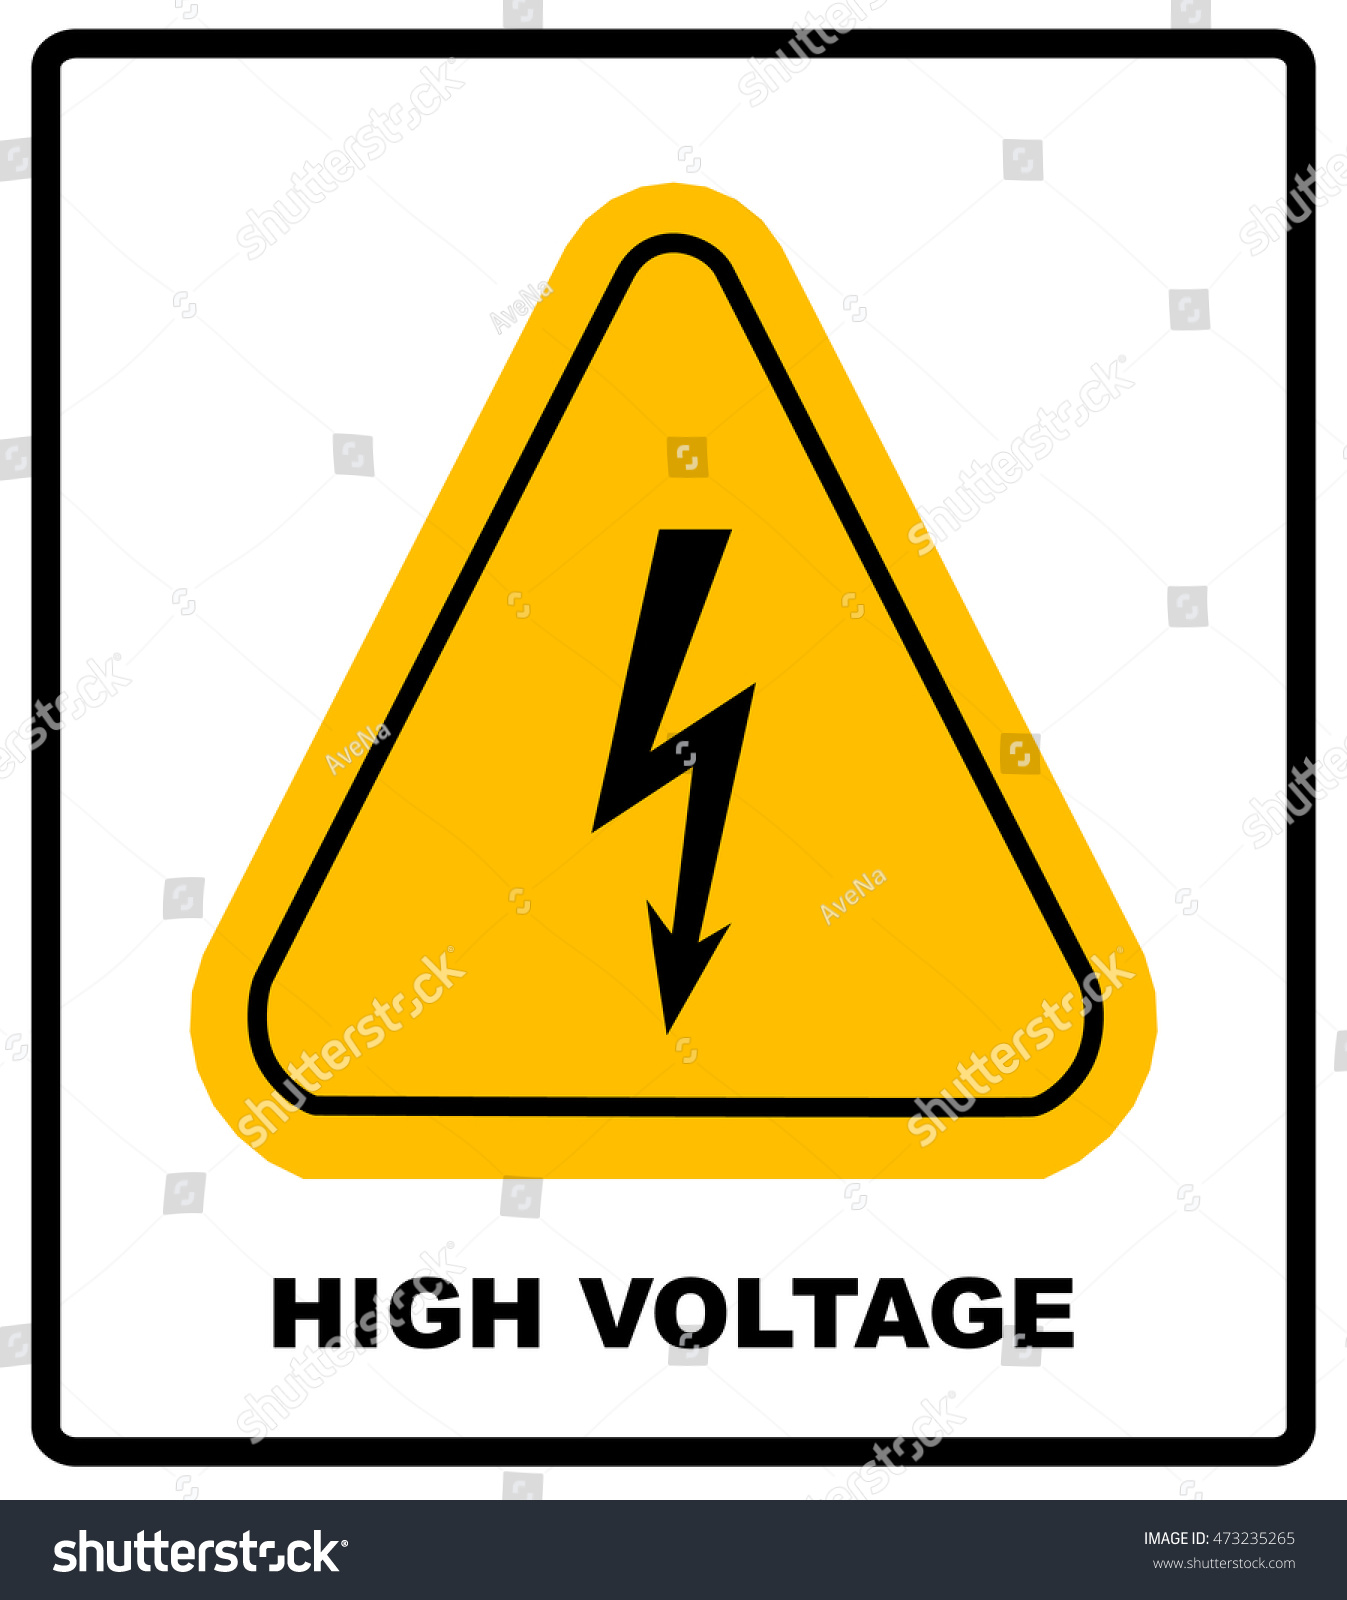 Awesome How To Wire Ssr Big Ibanez Pickup Wiring Clean Ibanez Rg Wiring Fender S1 Switch Wiring Diagram Young Coil Tap Wiring FreshStrat Wiring Bridge Tone High Voltage Sign Danger Banner Text Stock Vector 473235265 ..